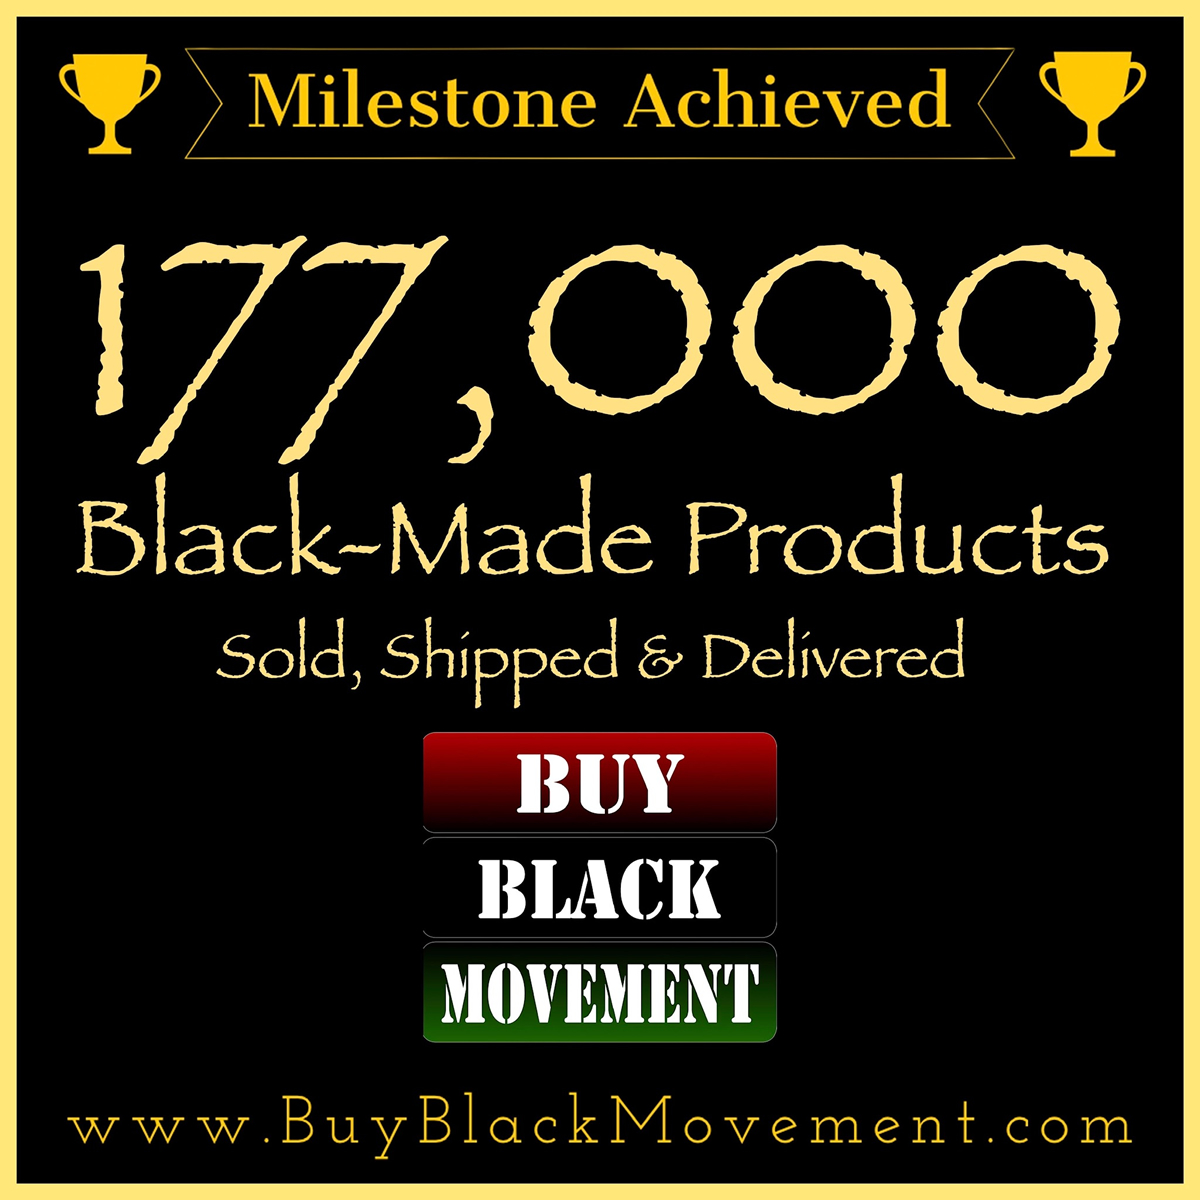 177,000 Products Sold